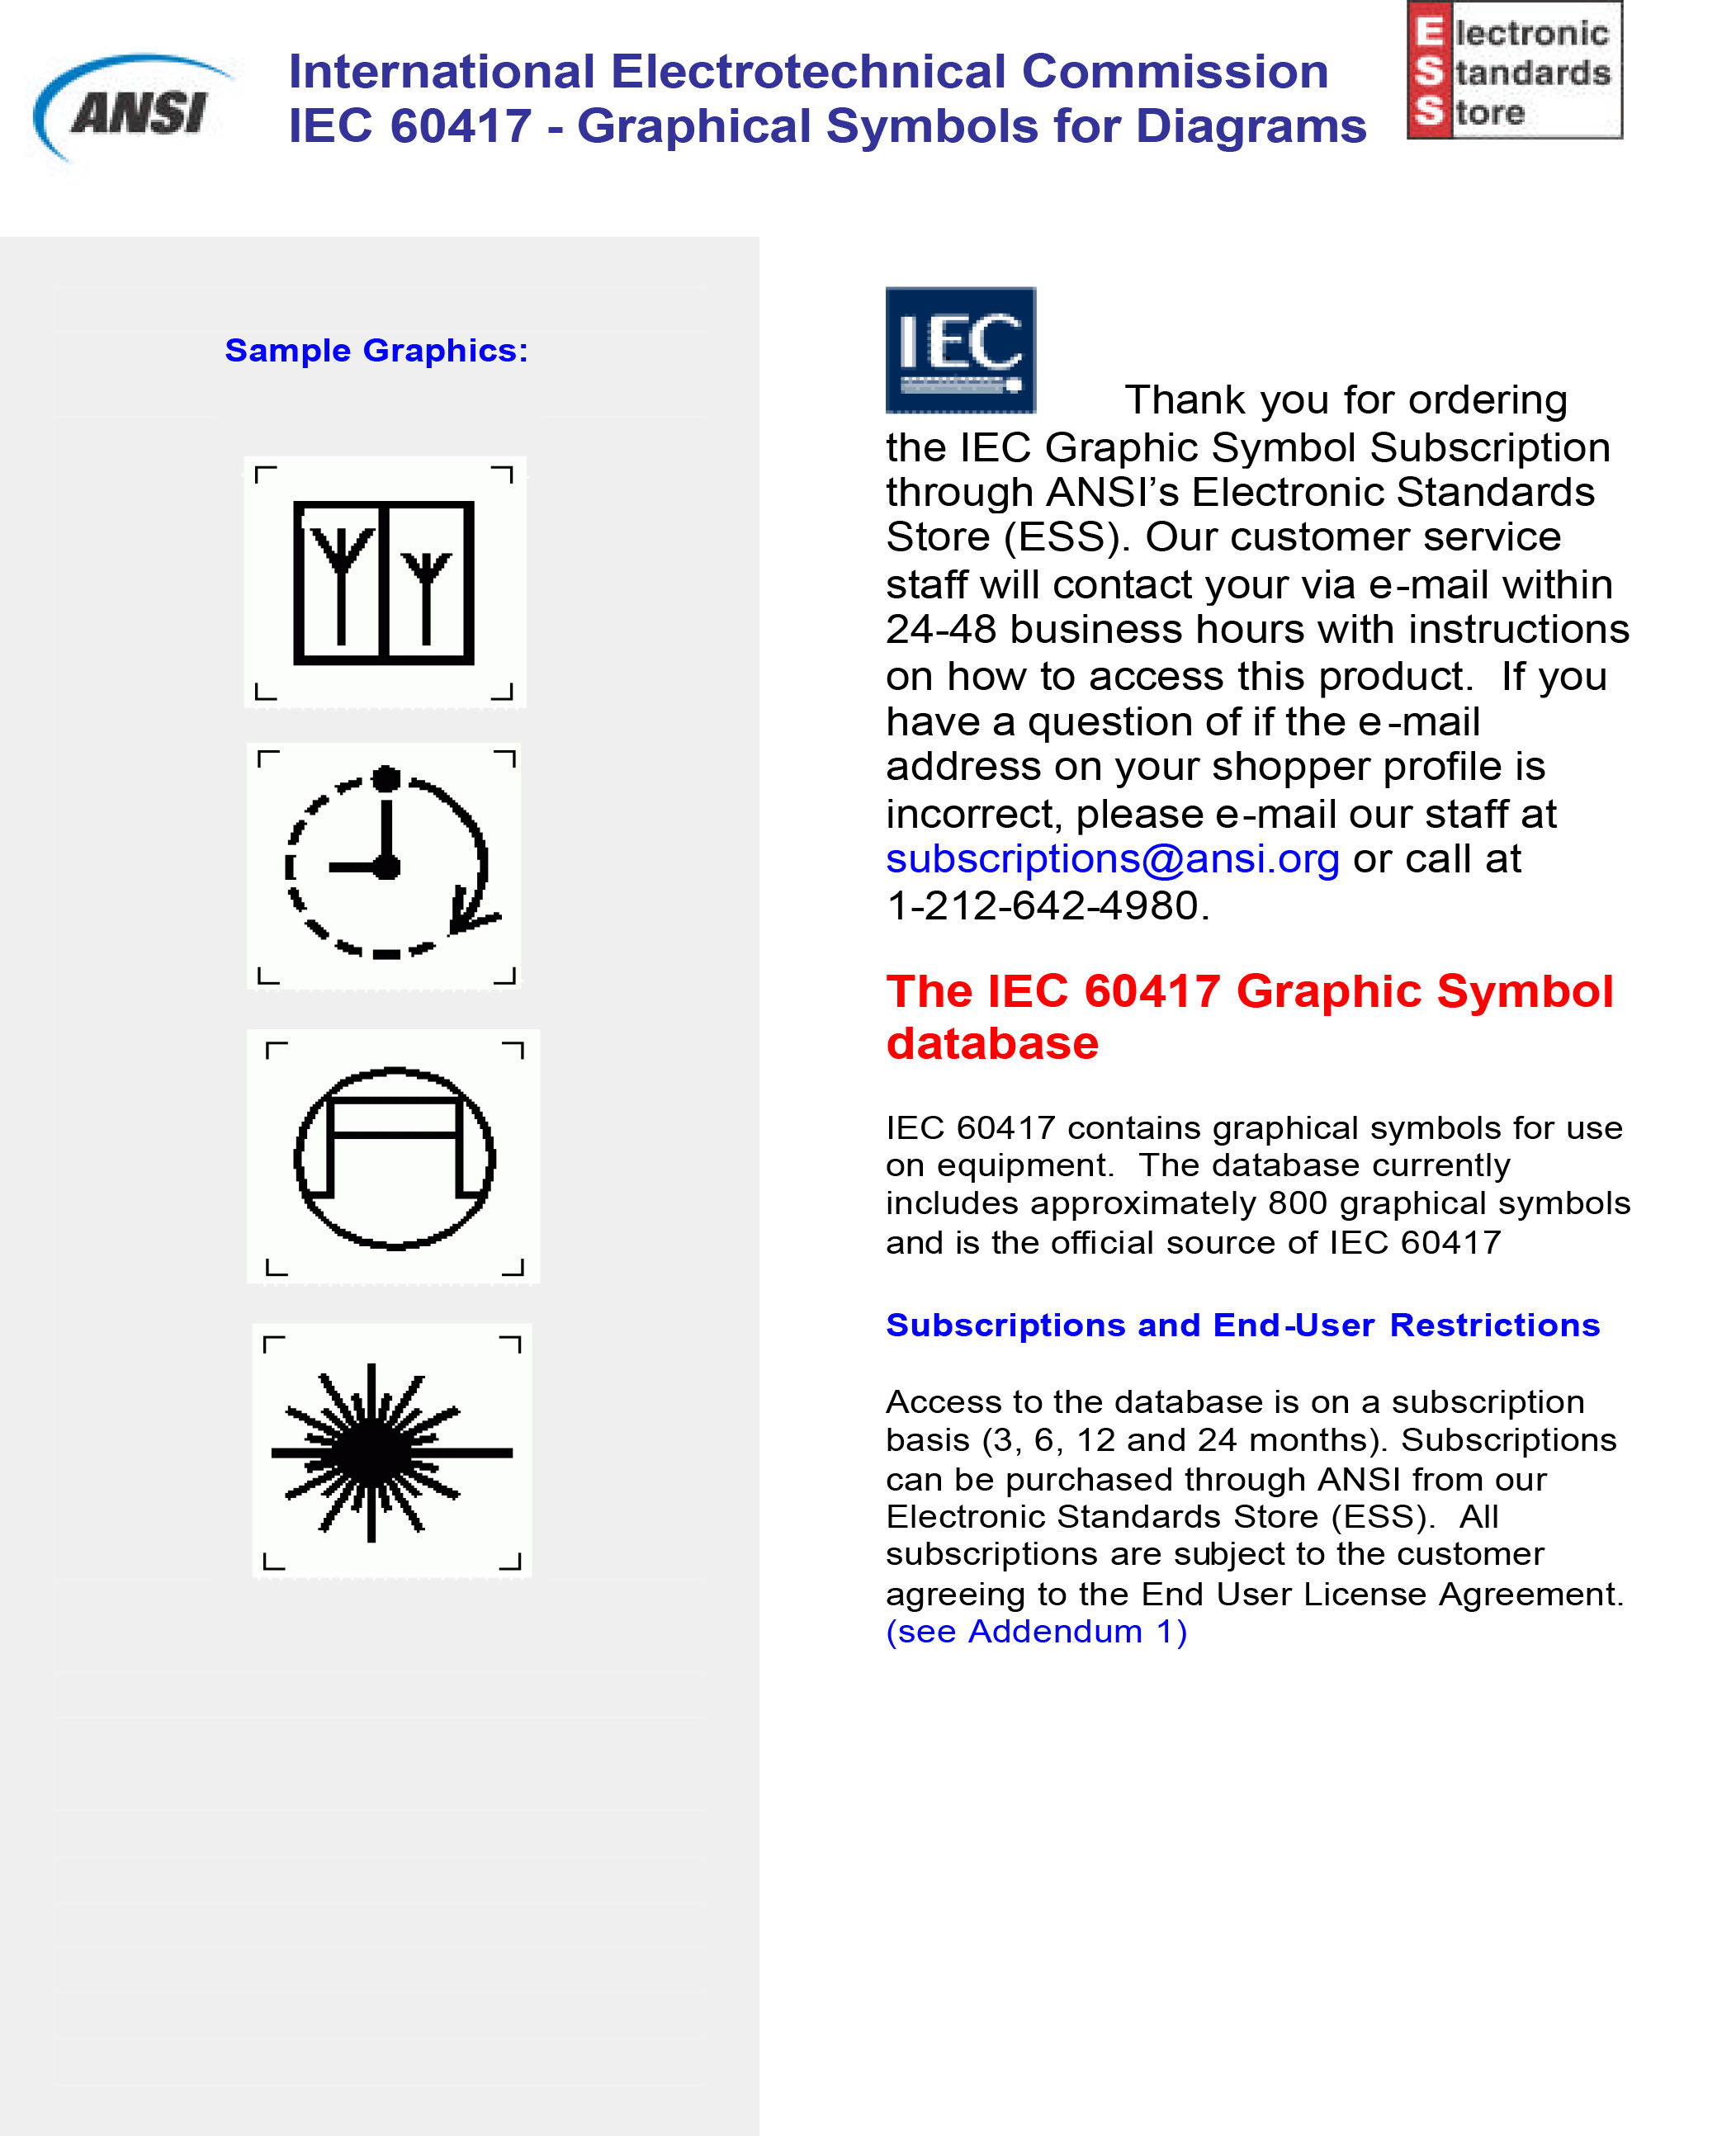 Iec 60417 Db 3m Ed 1 0 En 2002 Graphical Symbols For Use On